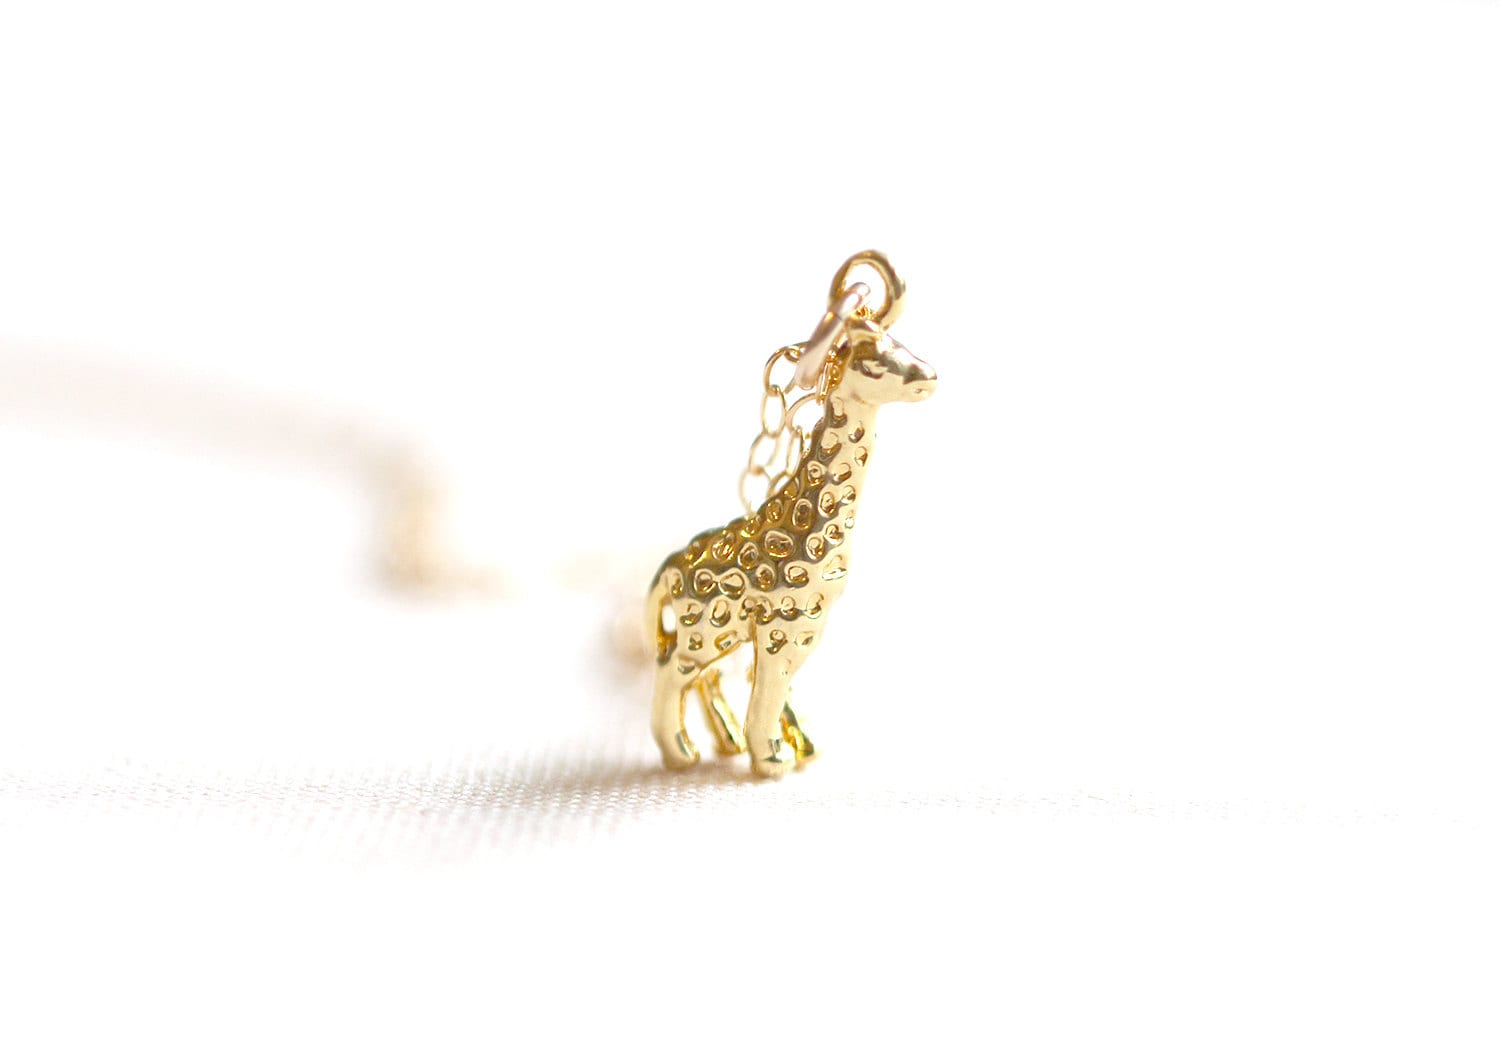 jewelry lyst necklace metallic s sterling women silver in woo pendant giraffe alex